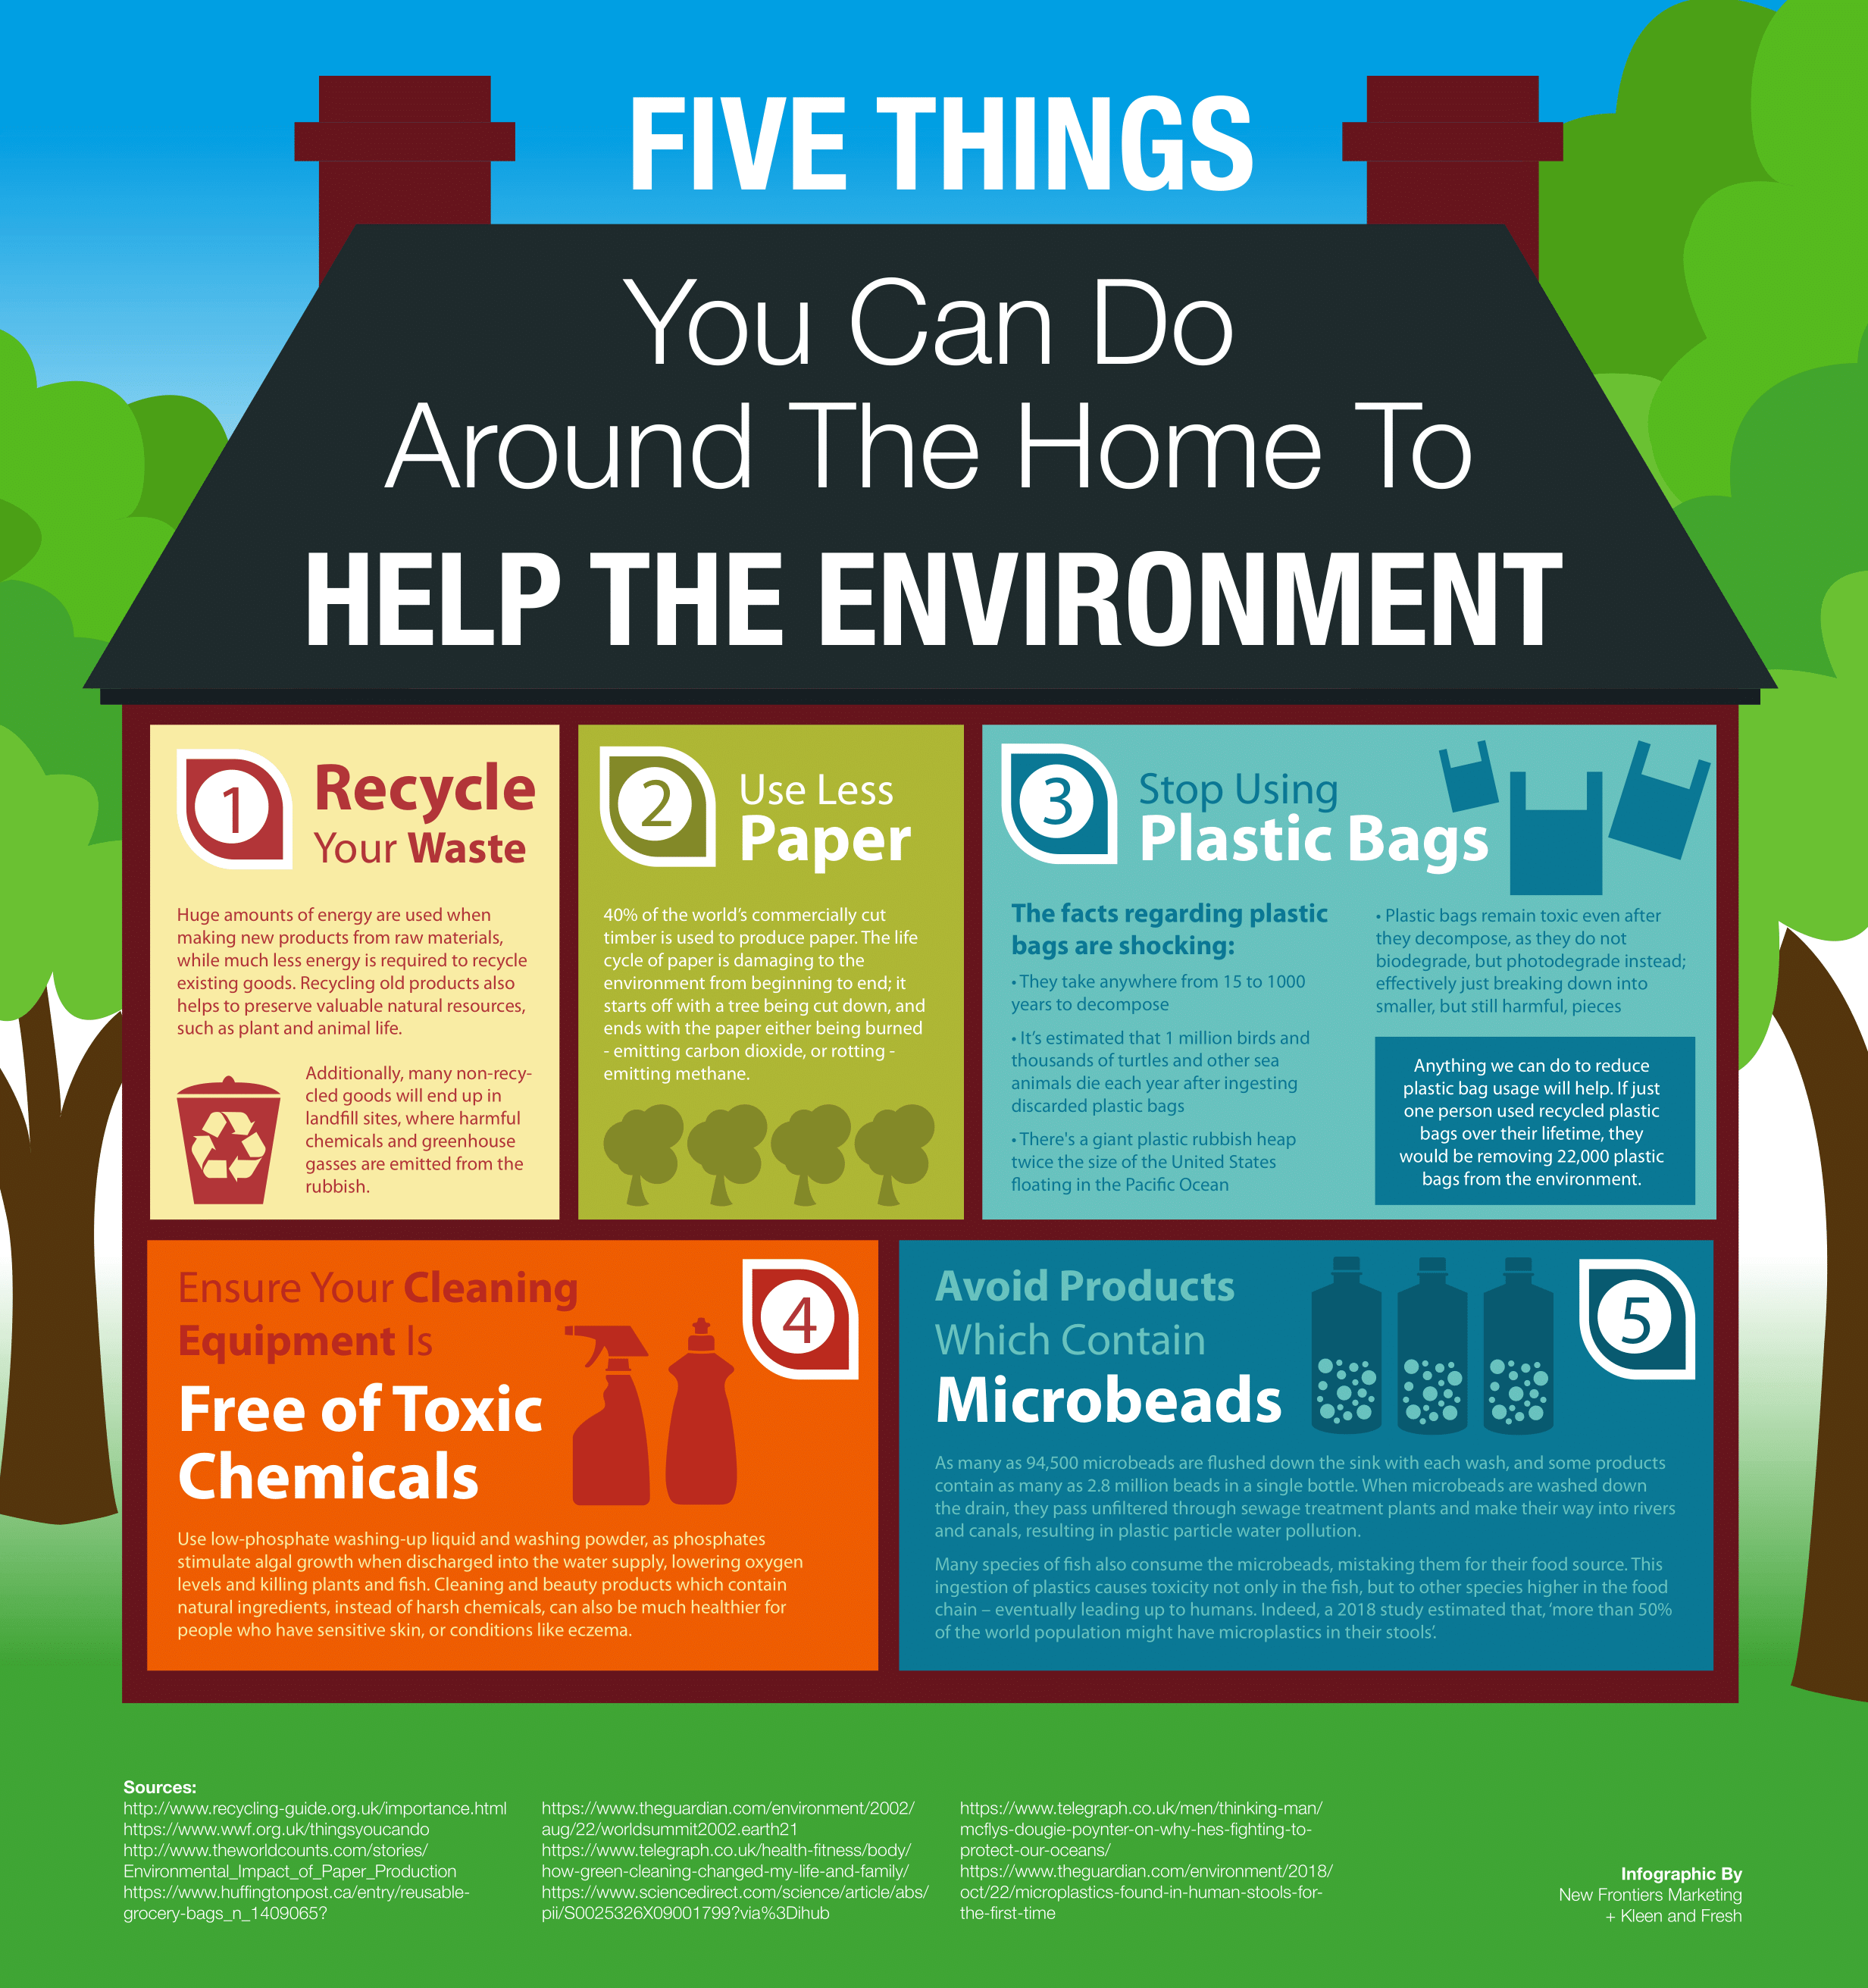 5-things-You-Can-Do-Around-the-Home-to-Help-the-Environment-infographic-plaza